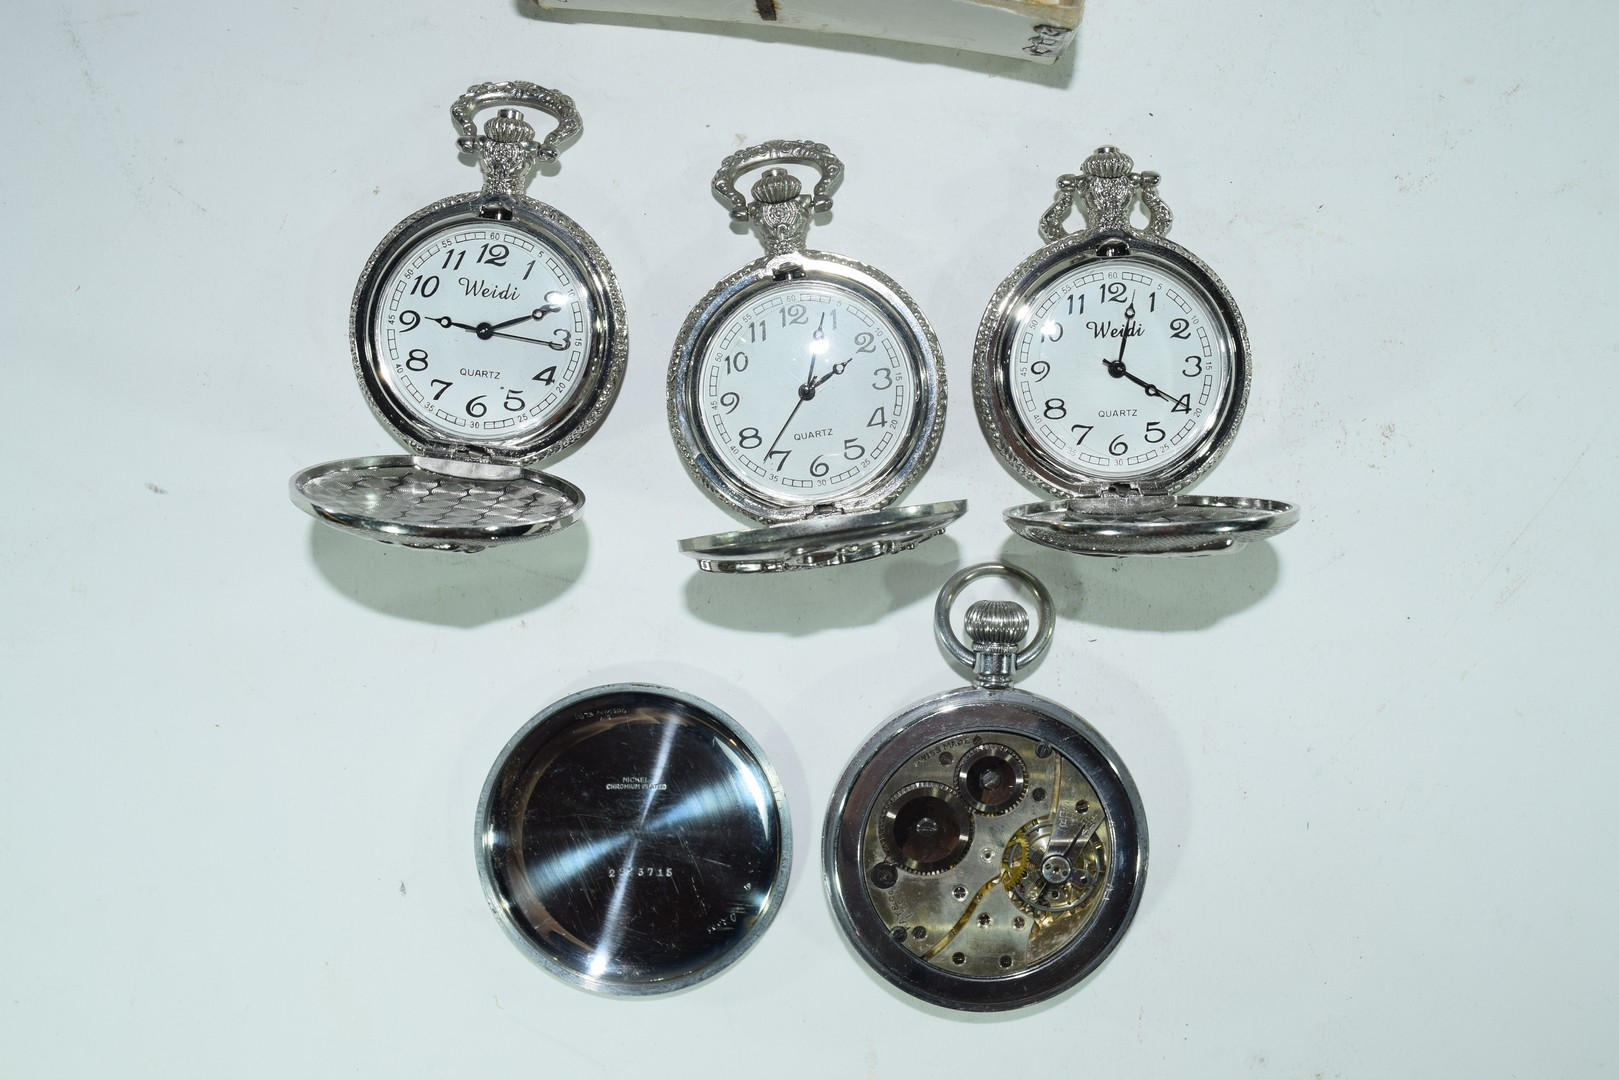 Cays screwback lever pocket watch - Image 4 of 4